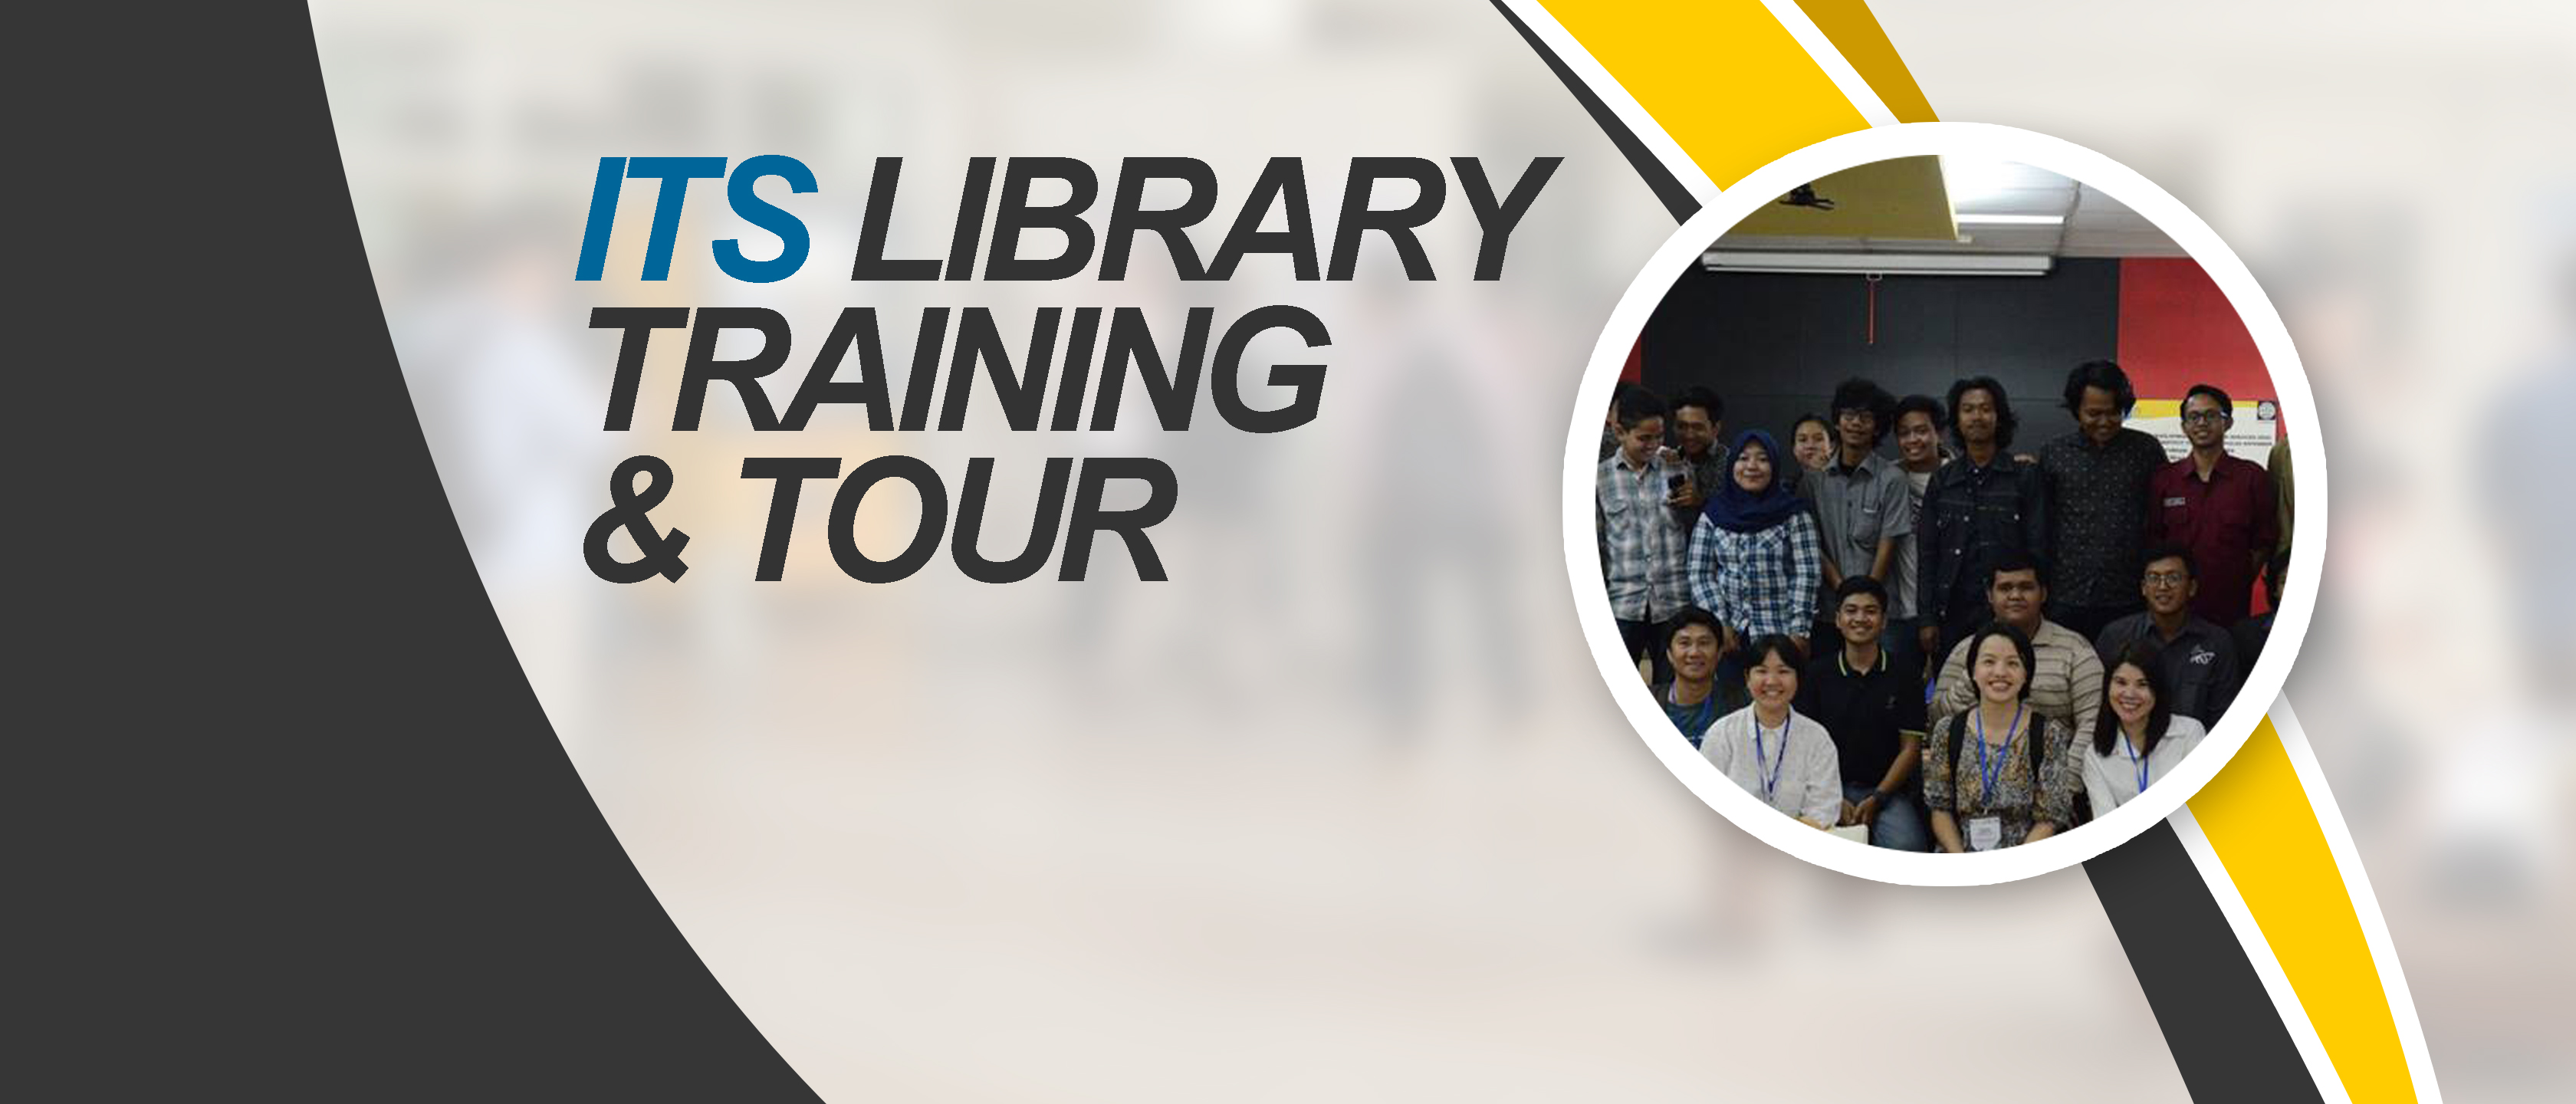 ITS Library Training & Tour (International Students)